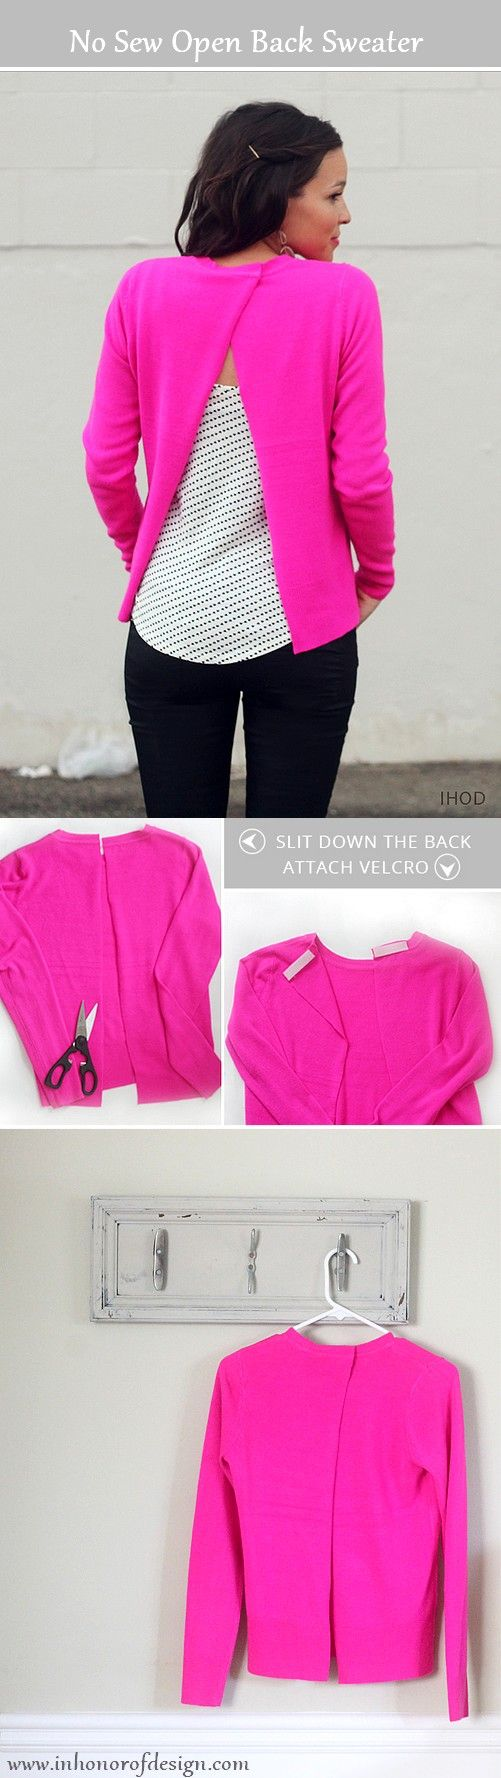 | DIY by In Honor of Design | Keywords: DIY & Crafts, fashion, In Honor of Design, no sew, open back sweater, tutorial